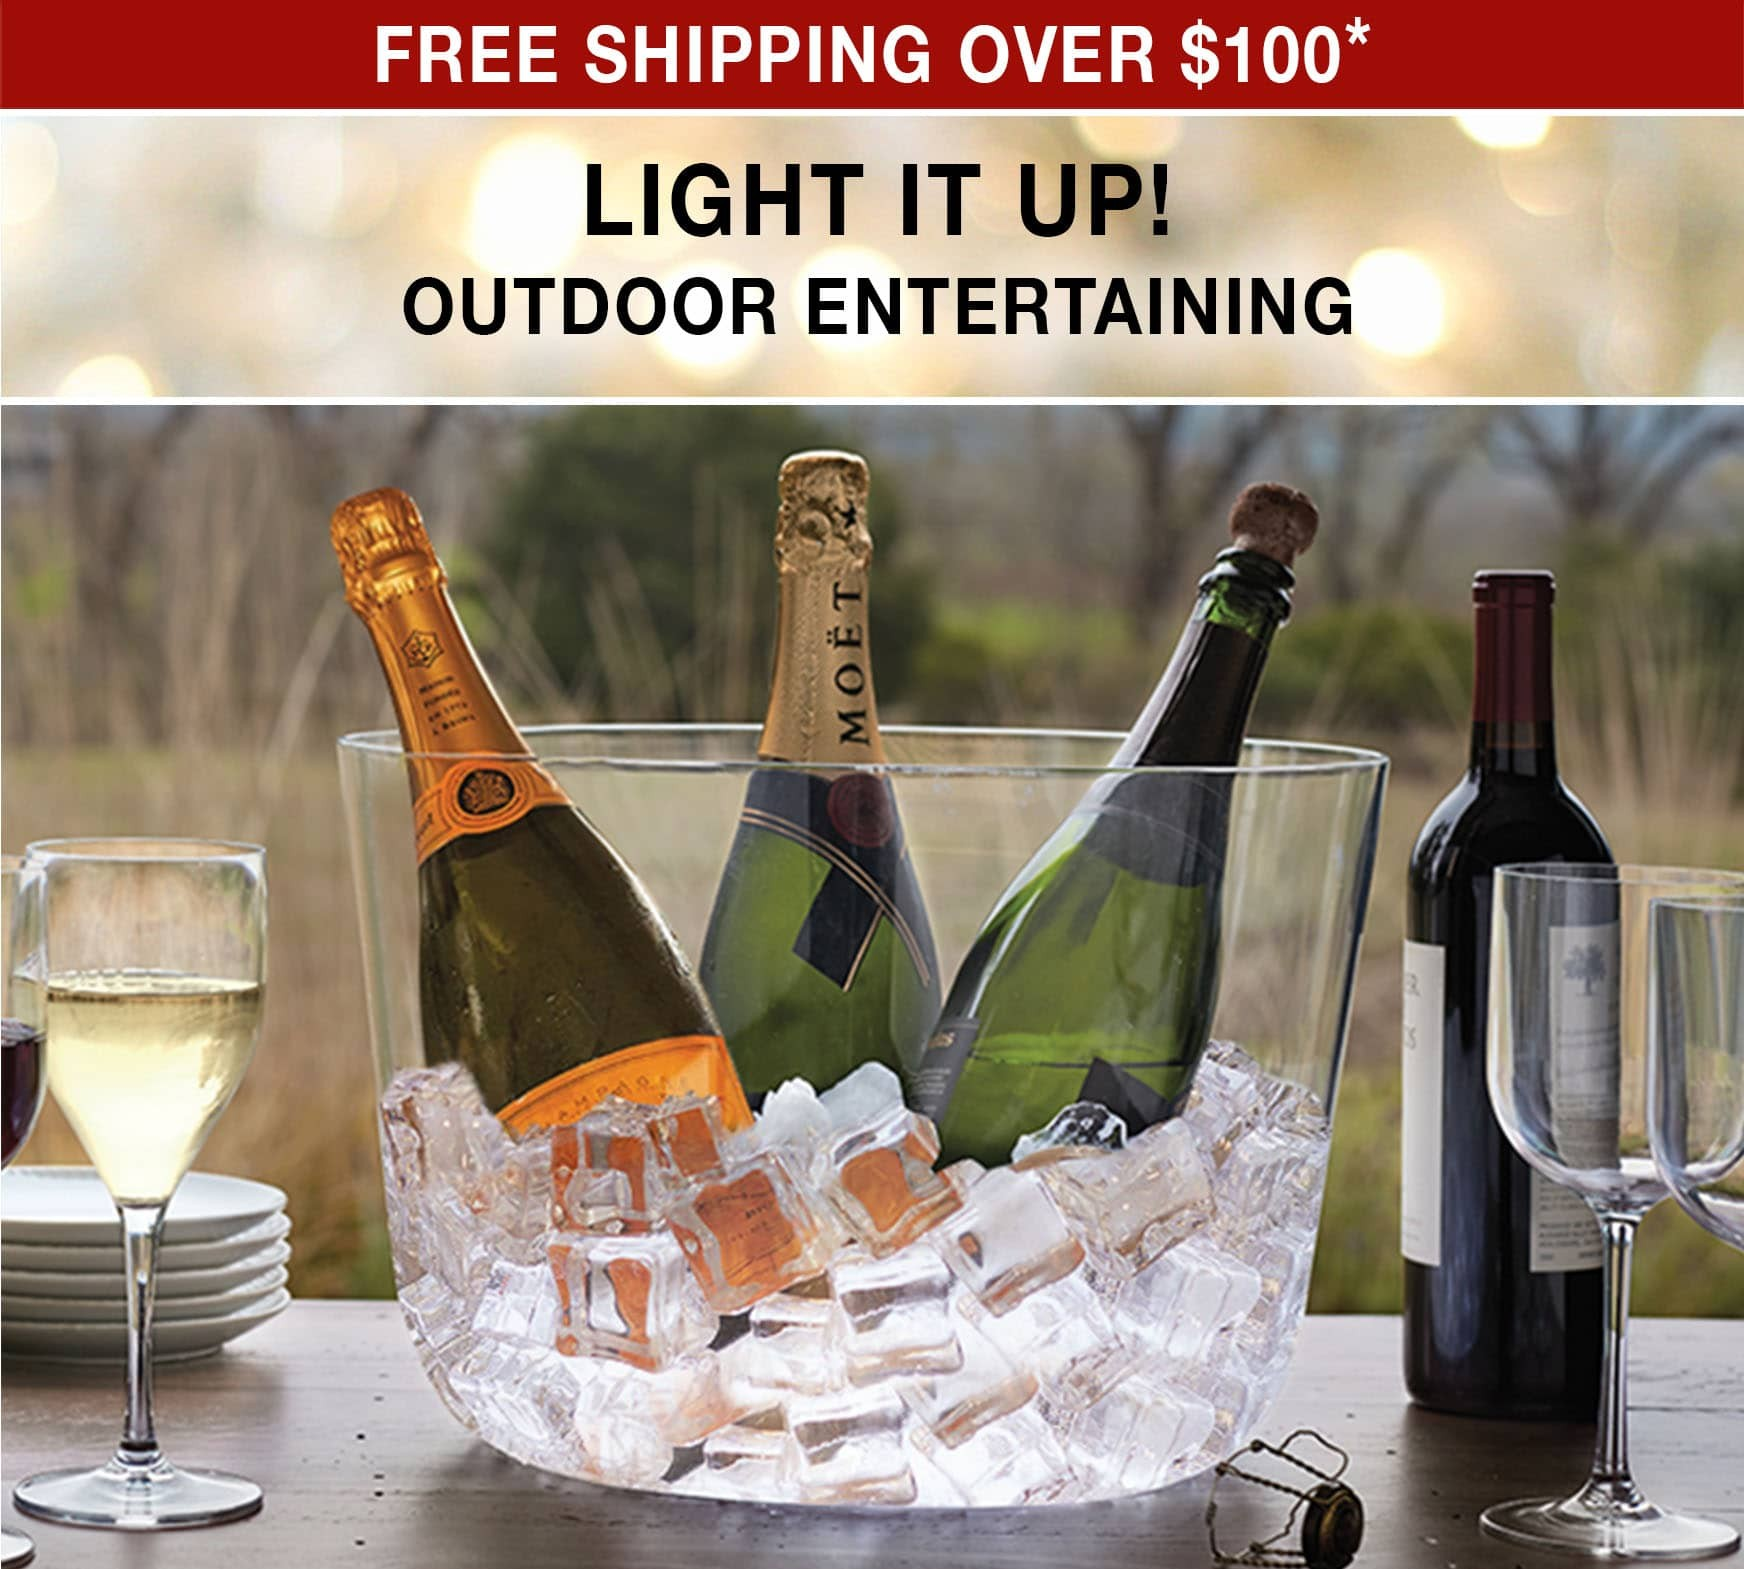 Light It Up Outdoor Entertaining! Free Shipping over $100 use code FS21W